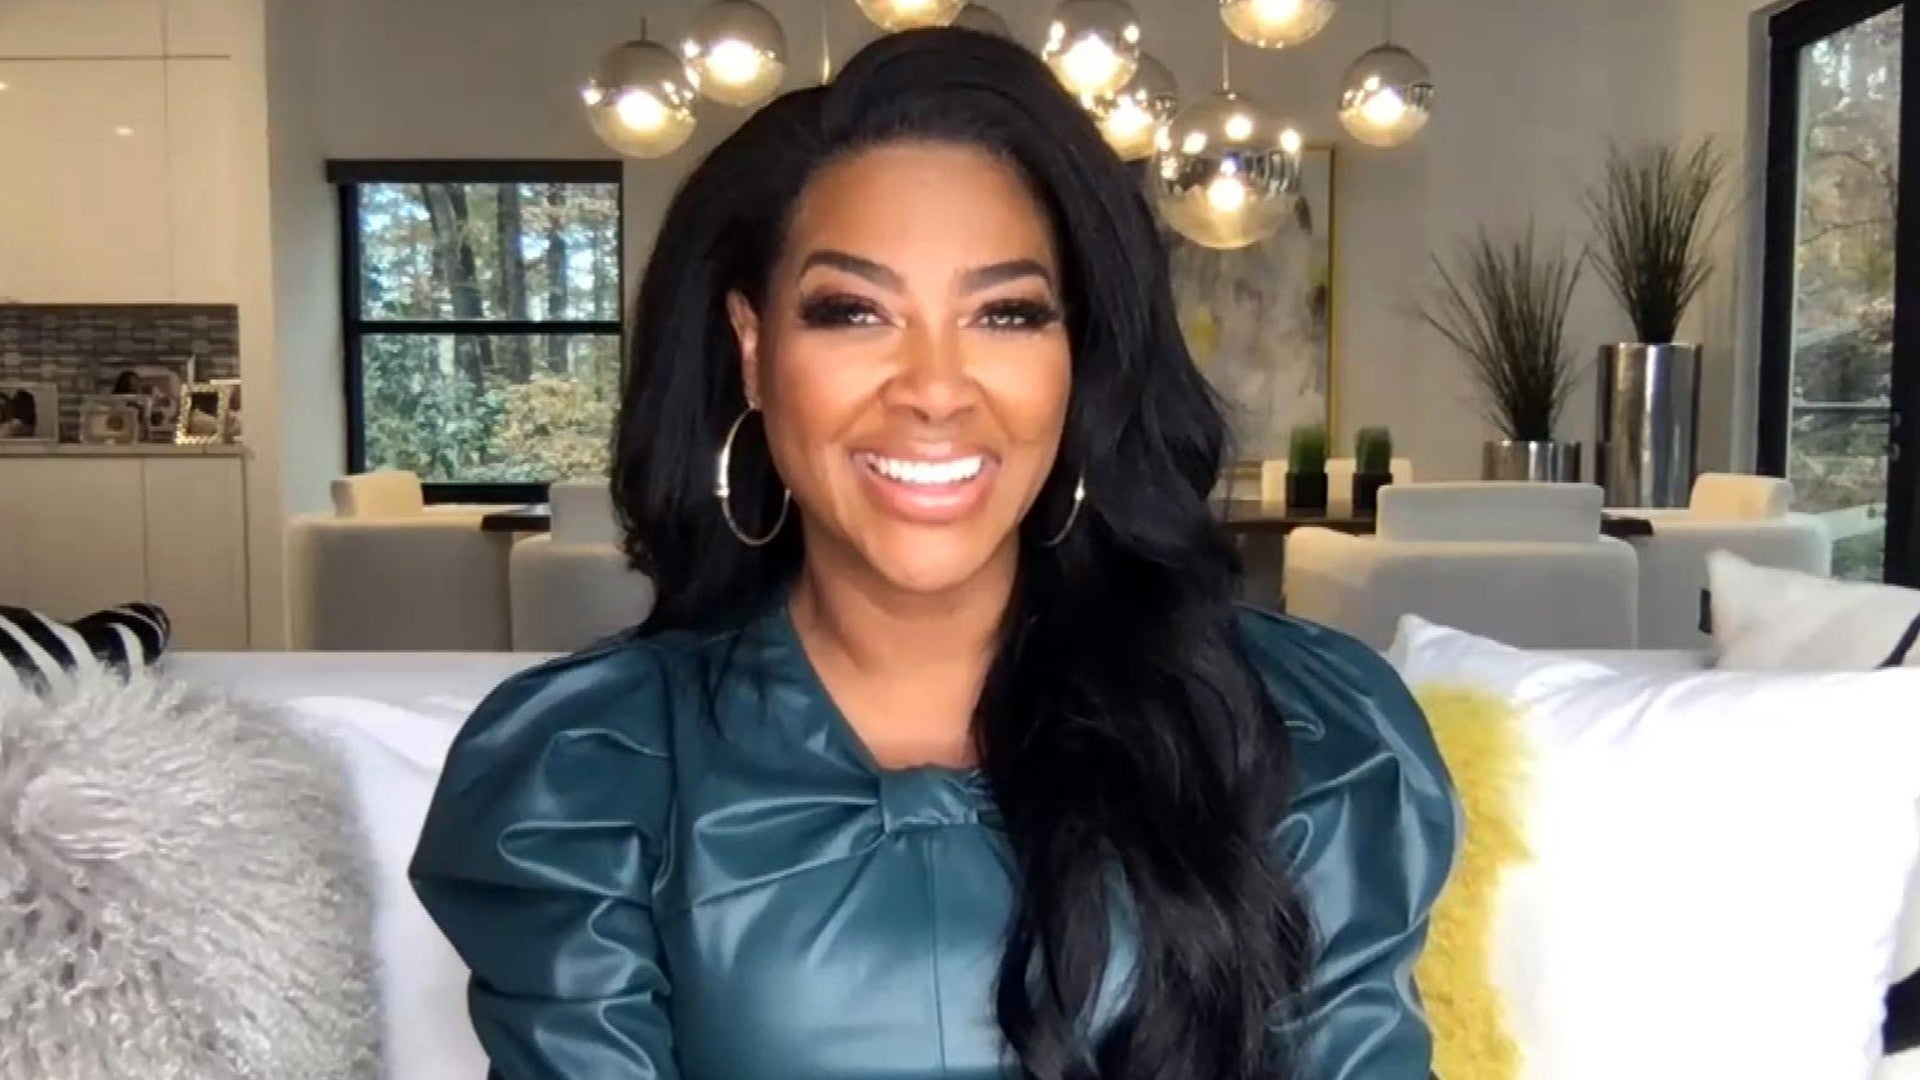 Kenya Moore Talks About Working Out With Her Fans Check Out Her Photo At The Gym